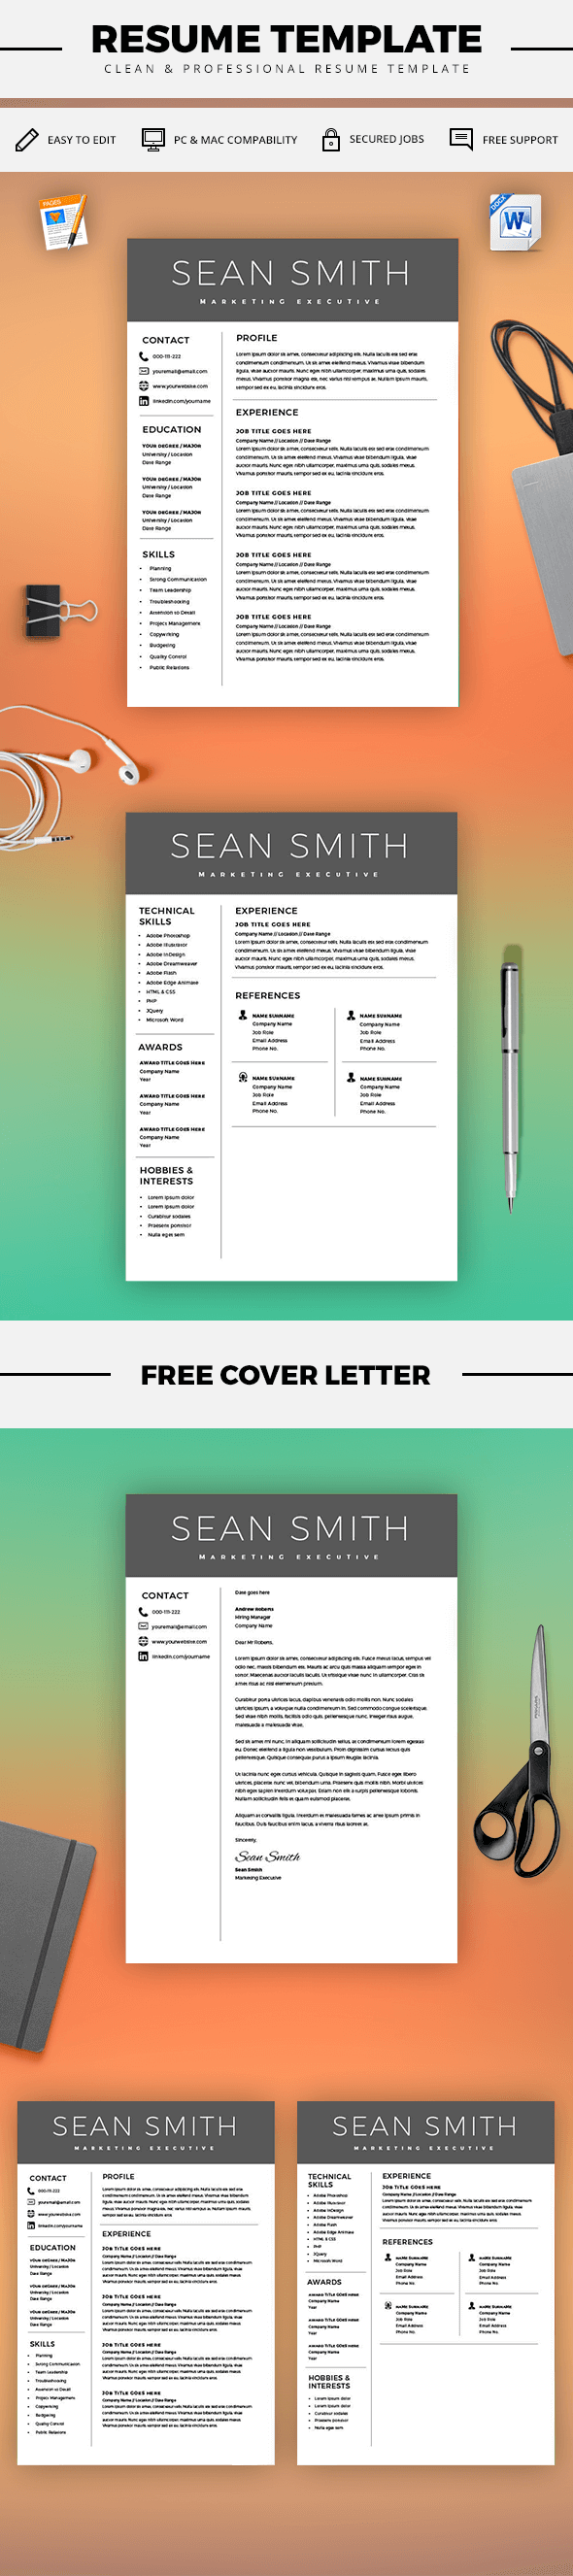 CV Template - Professional Resume Template - Free Cover Letter ...